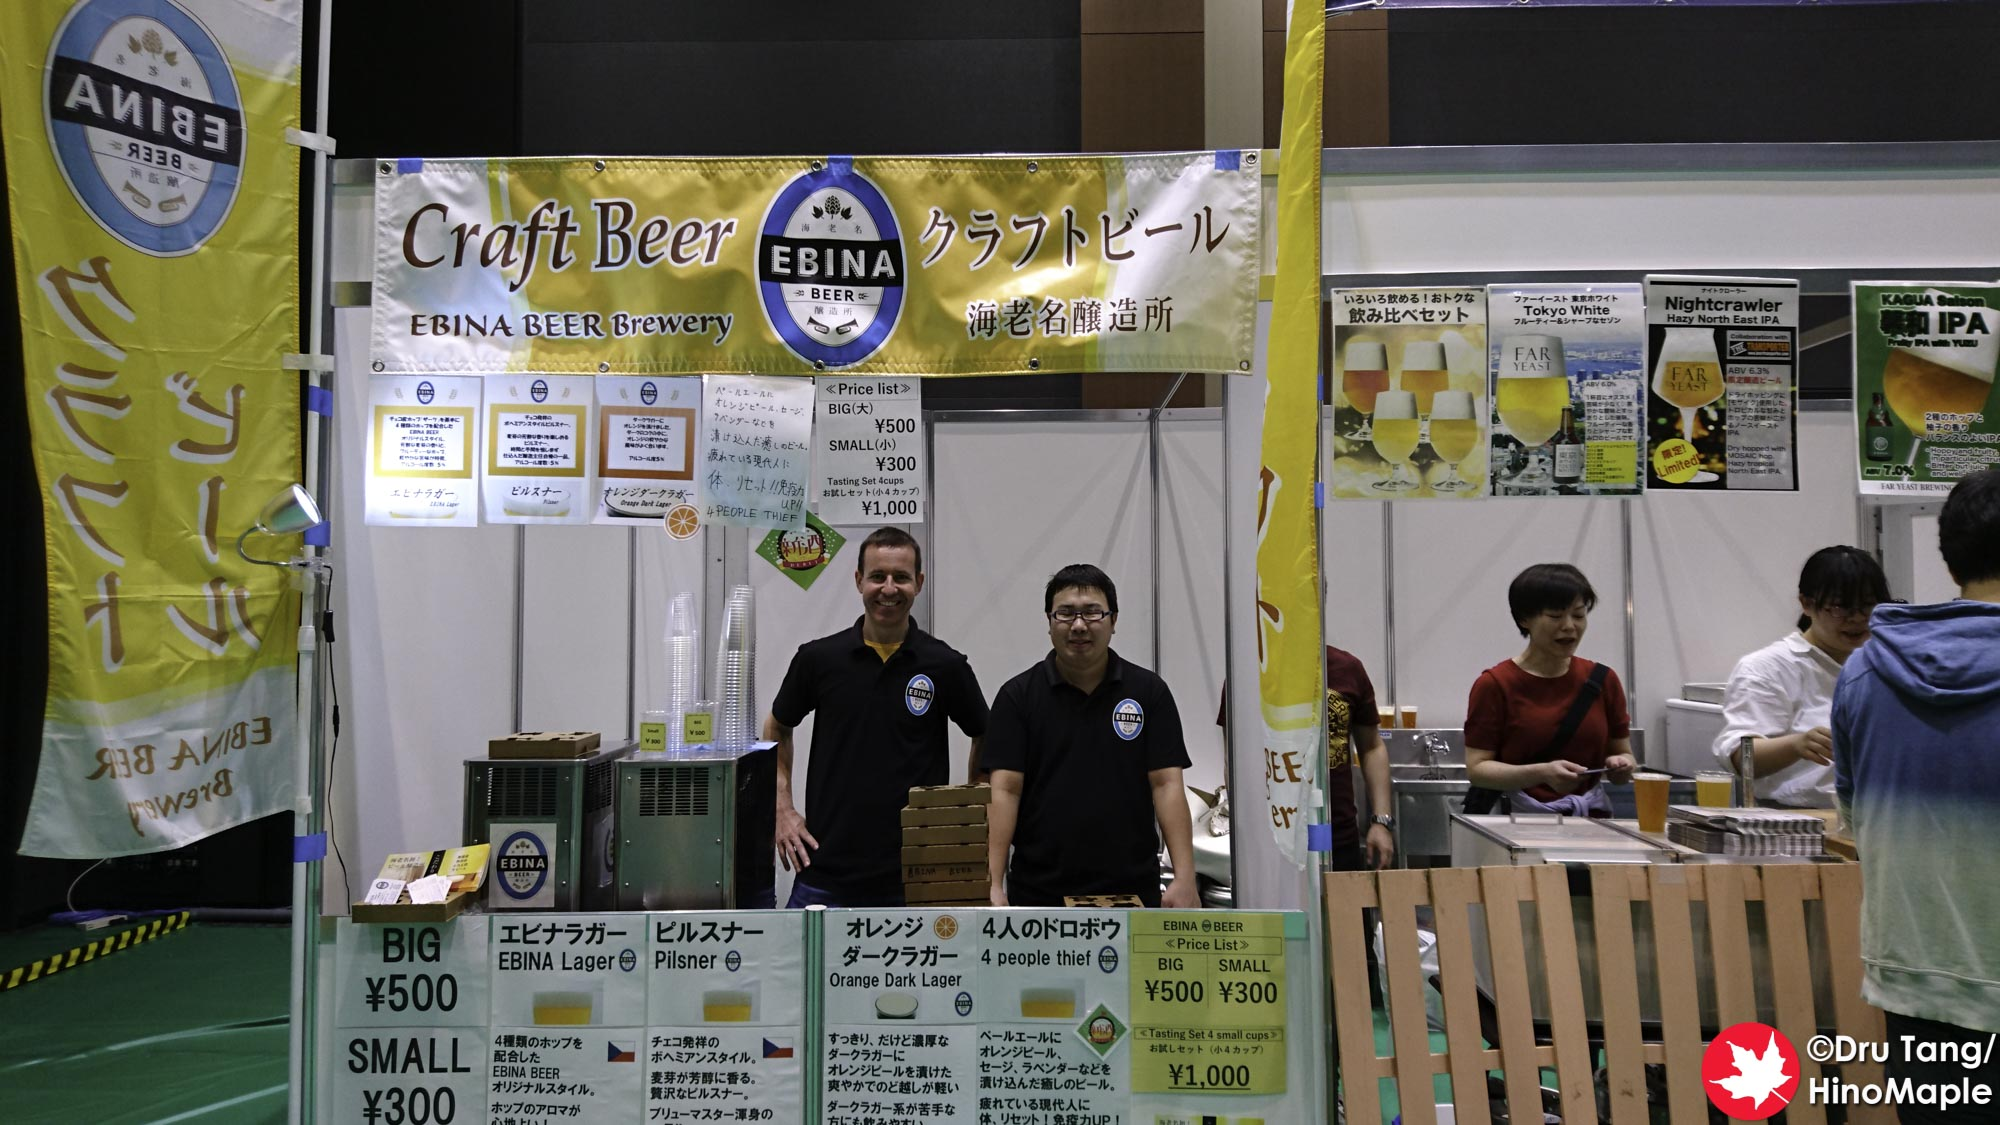 Ebina Beer @ Craft Beer Shinshu Kaikin 2018